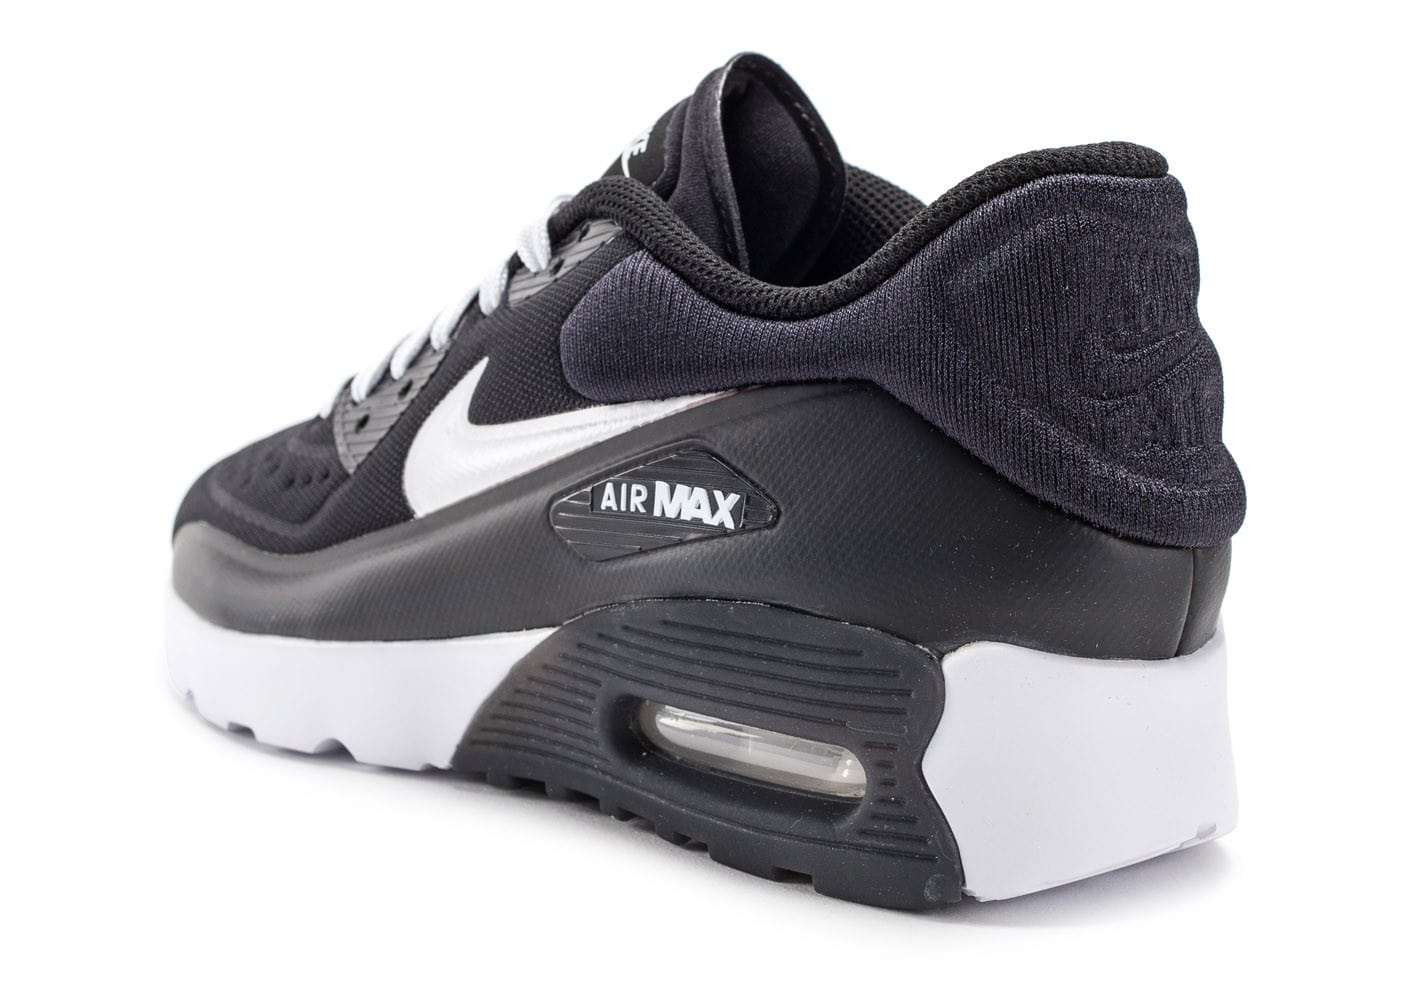 nike air max 90 ultra essential junior noire et blanche chaussures chaussures chausport. Black Bedroom Furniture Sets. Home Design Ideas